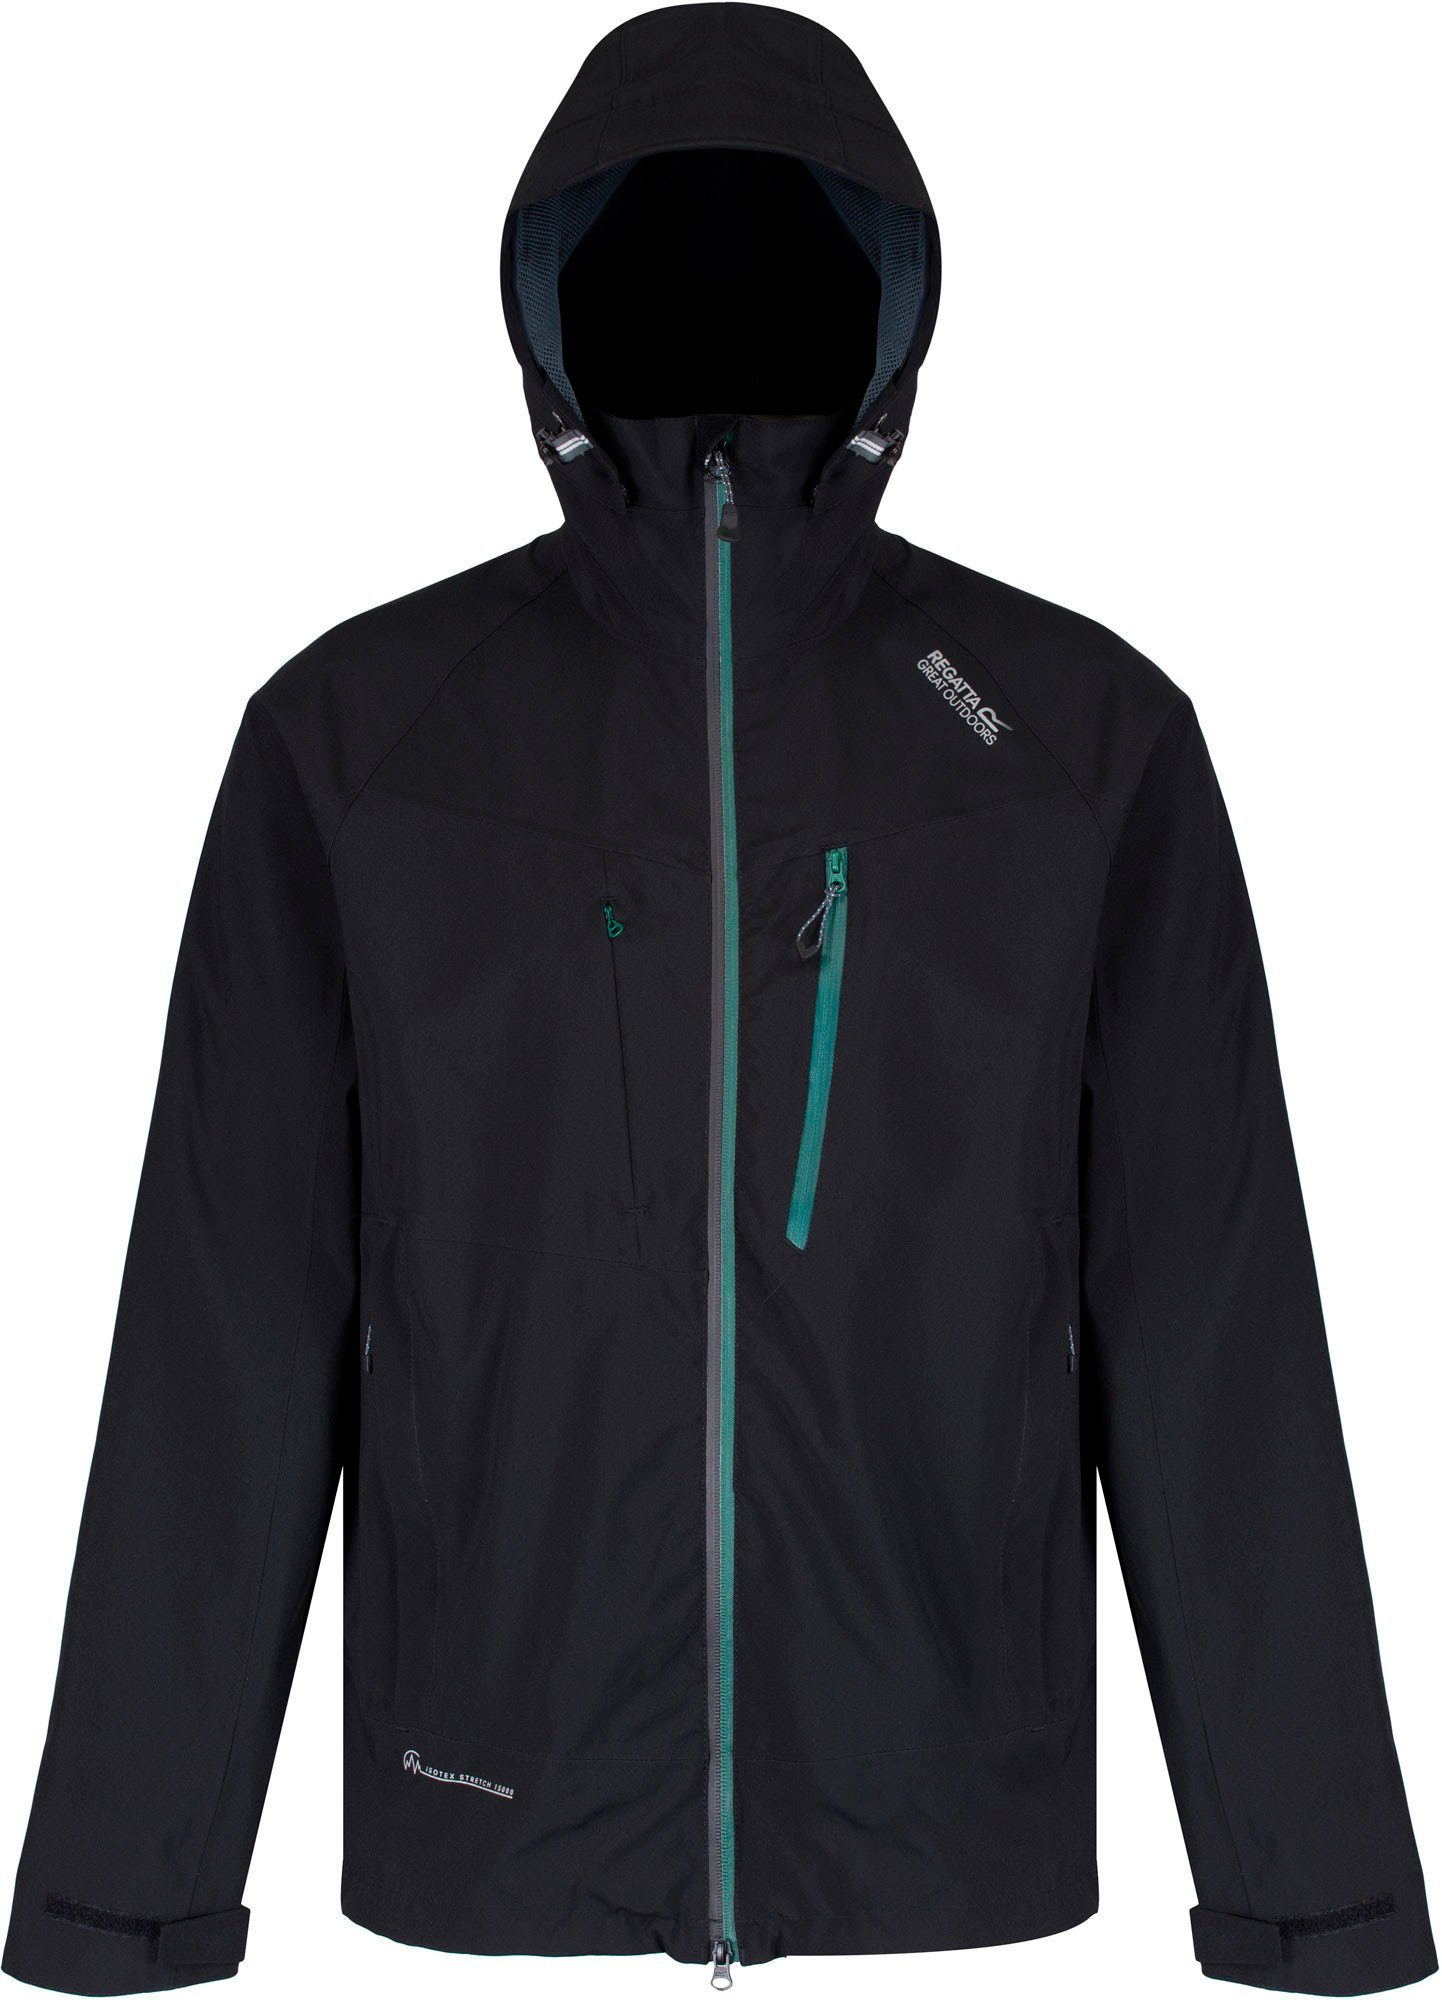 Regatta Outdoorjacke »Oklahoma II Jacket Men Waterproof«